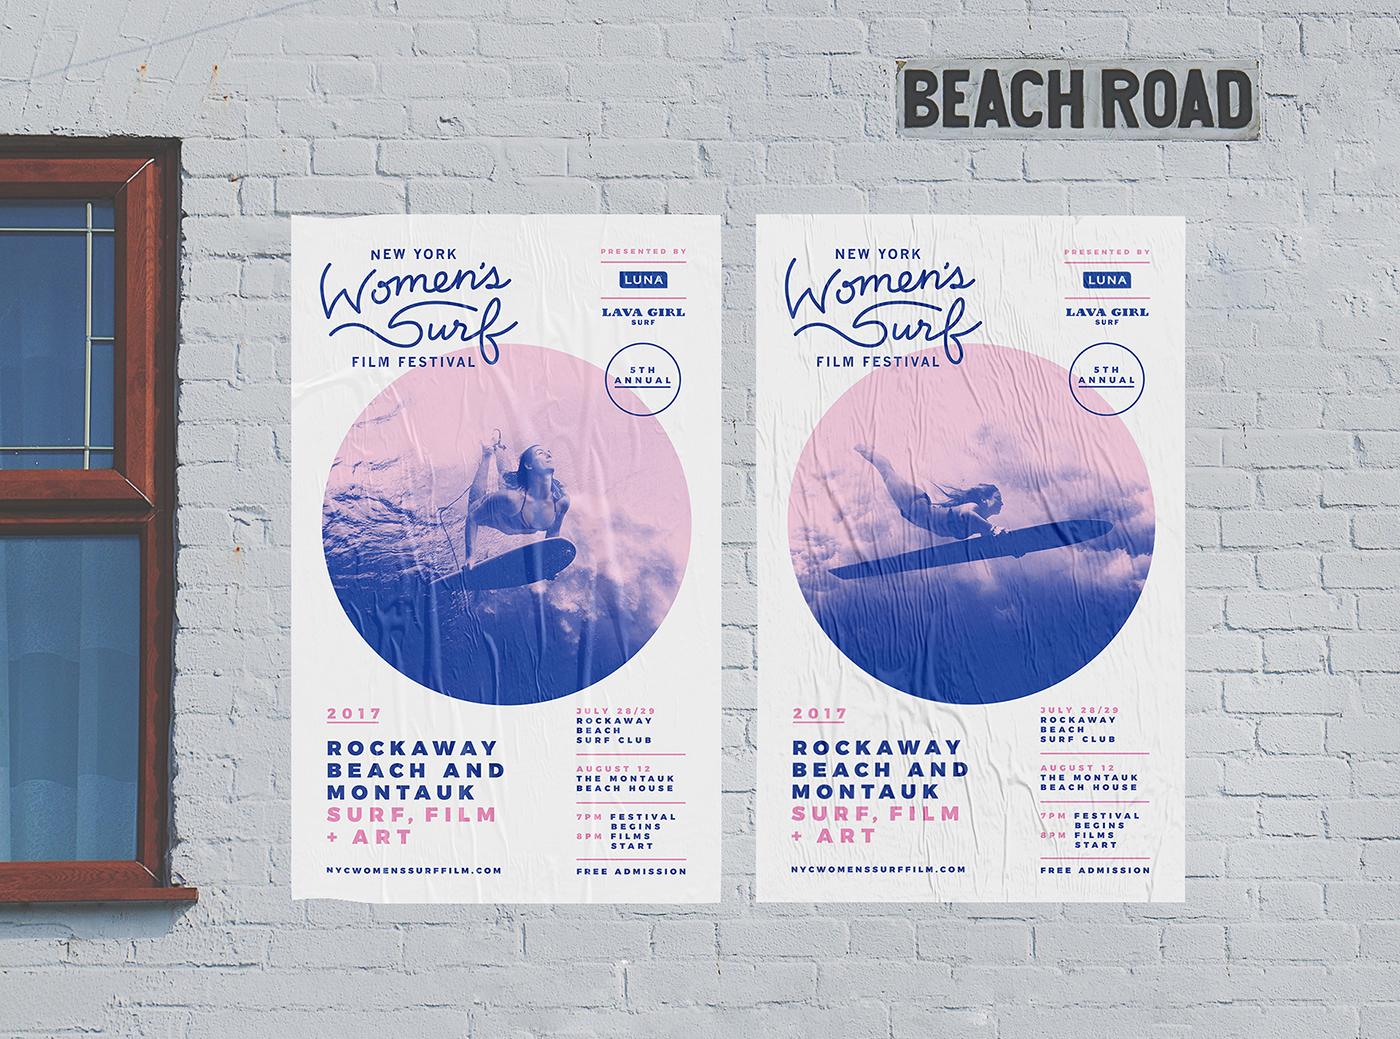 Brand Identity: New York Women's Surf Film Festival